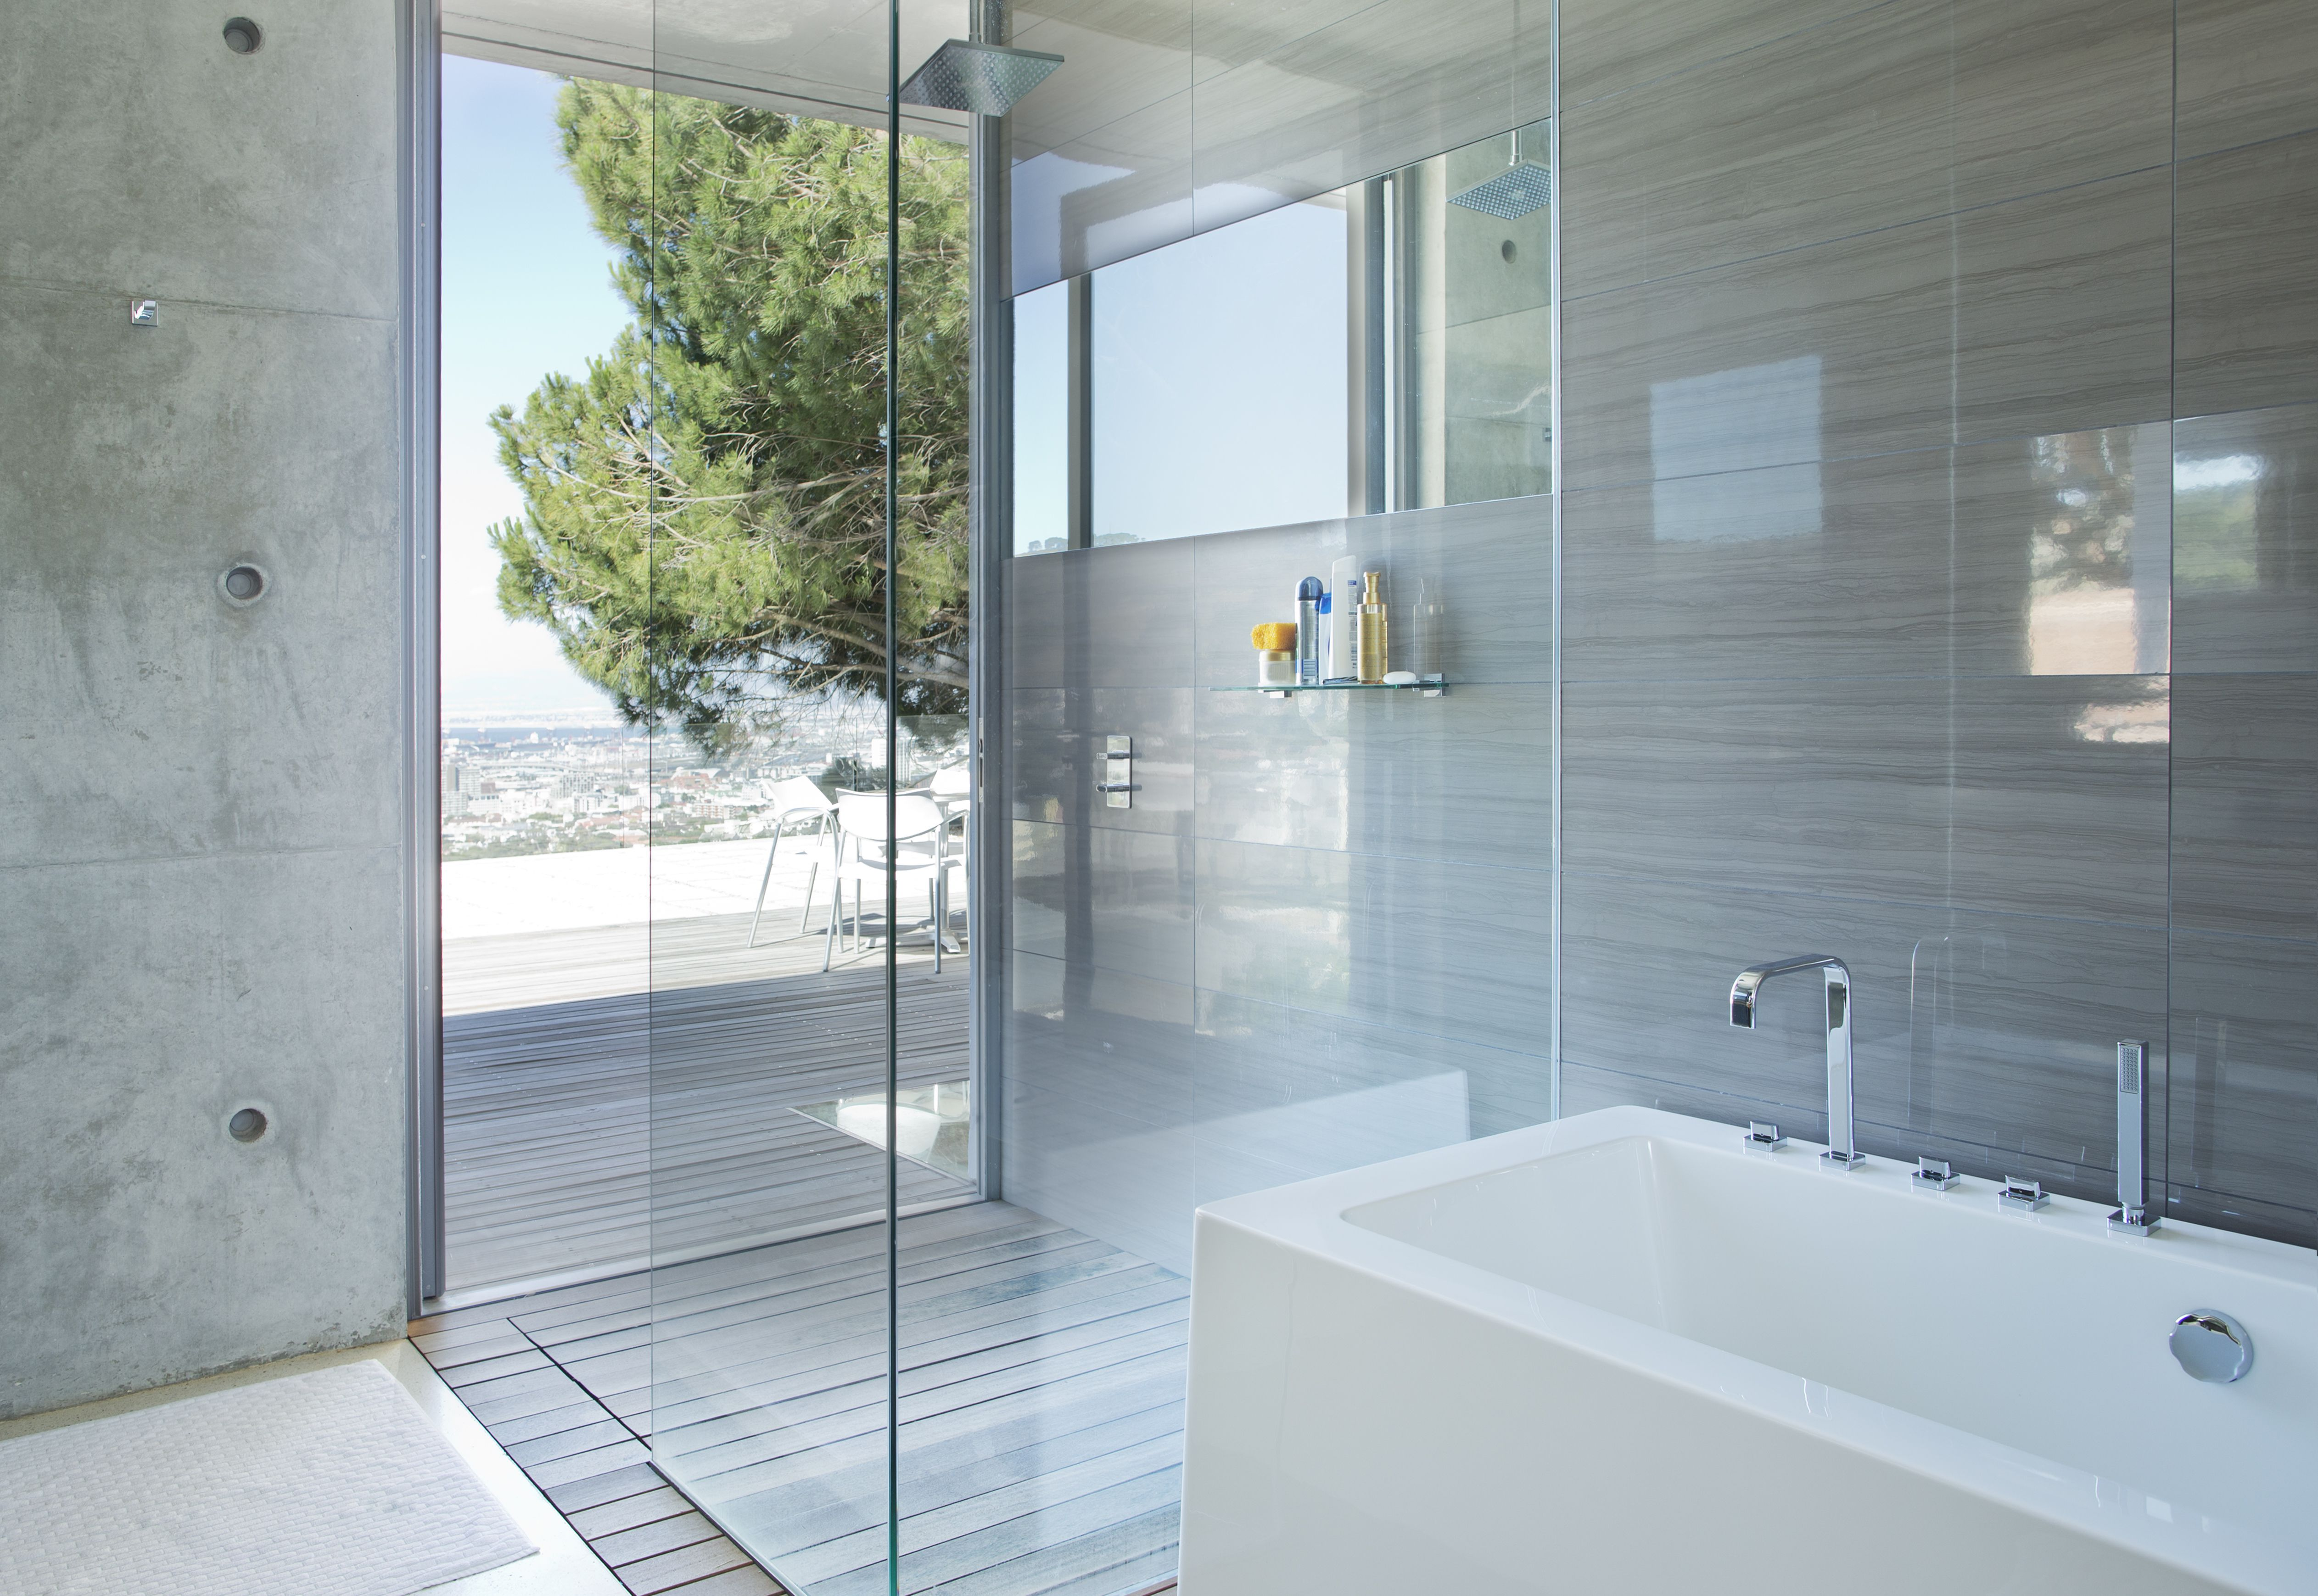 Different Types Of Showers For Your Bathroom.10 Basic Bathtub Styles You Should Know About